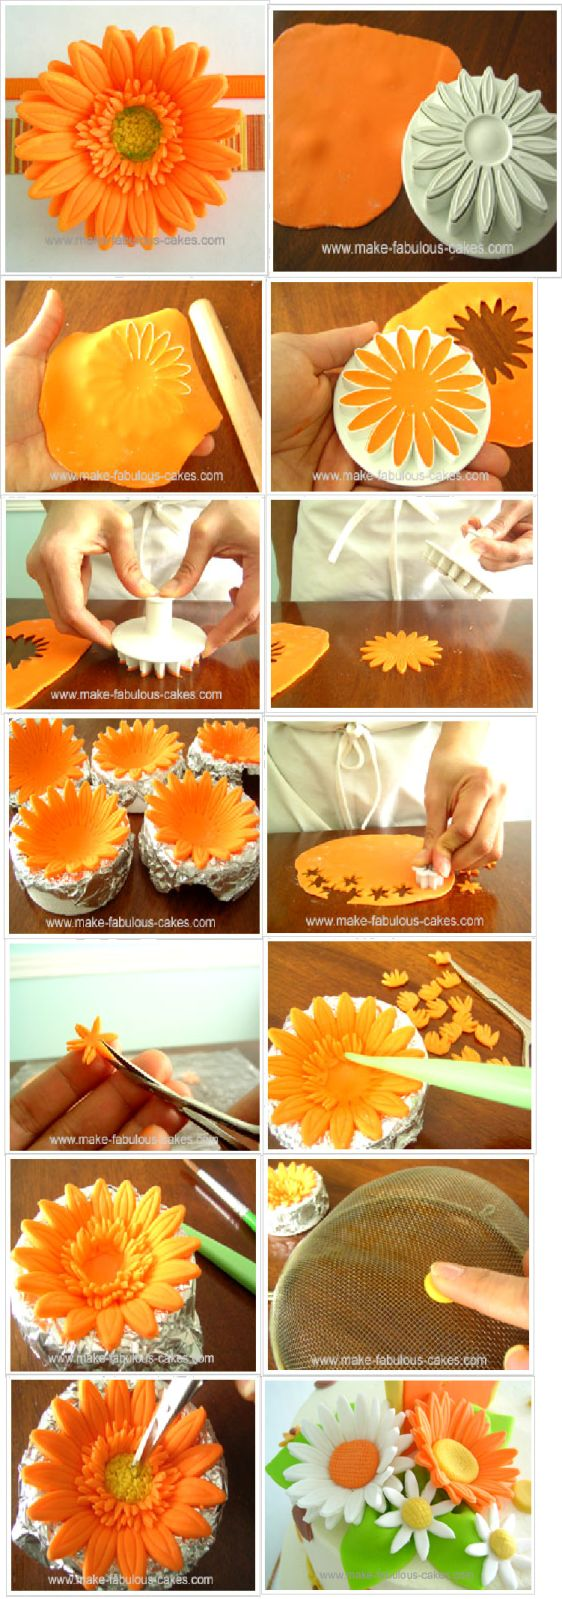 .fondant flowers - sounds easy